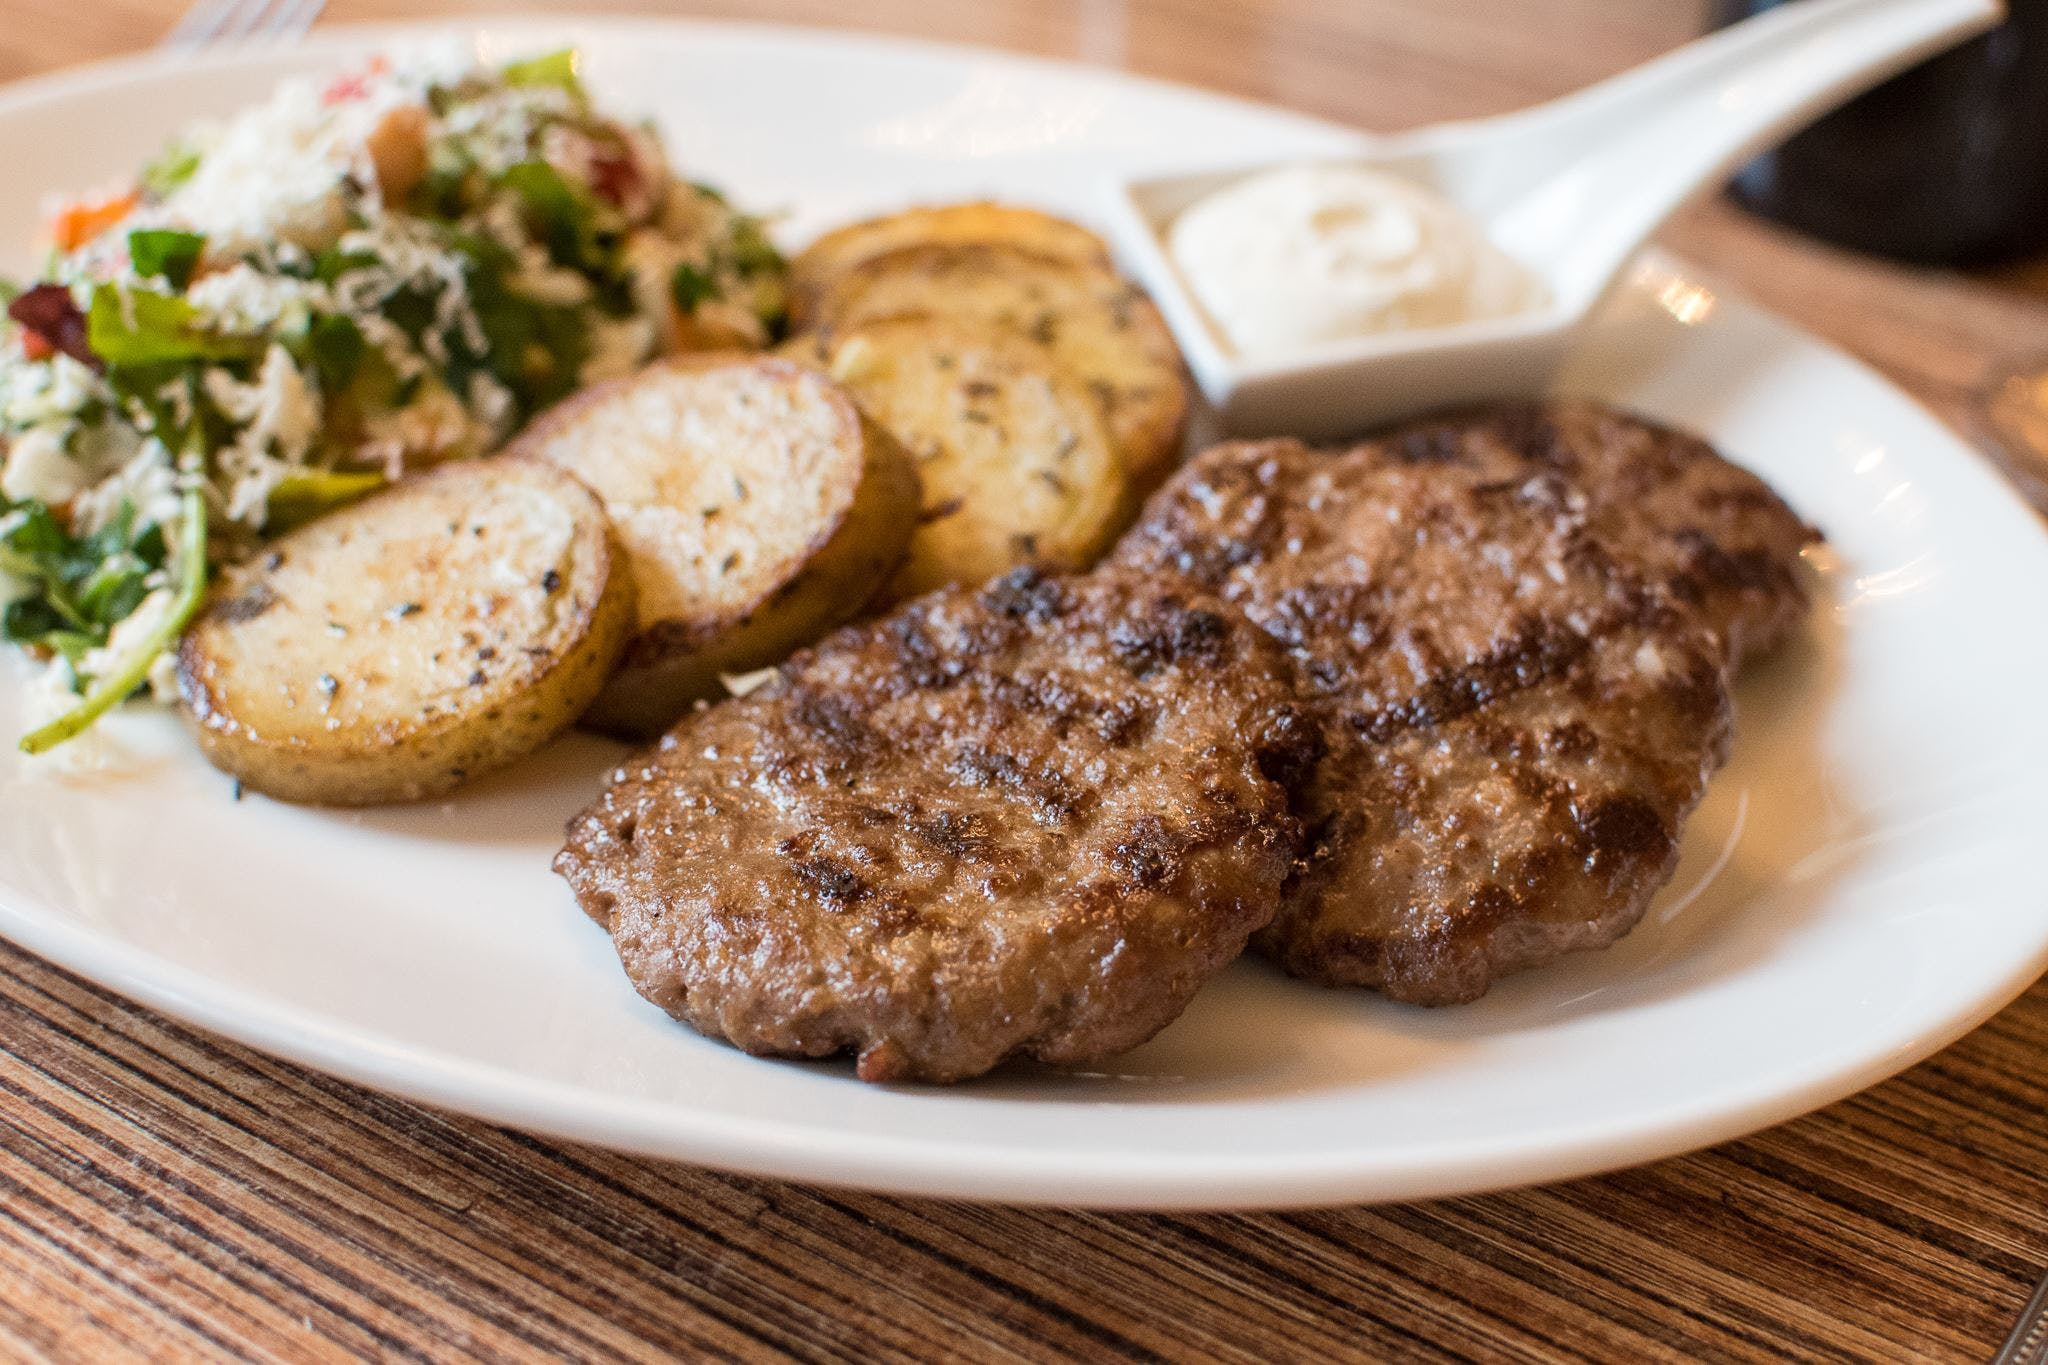 Lumani's Albanian Sausages from Villa Dolce in Middleton, WI